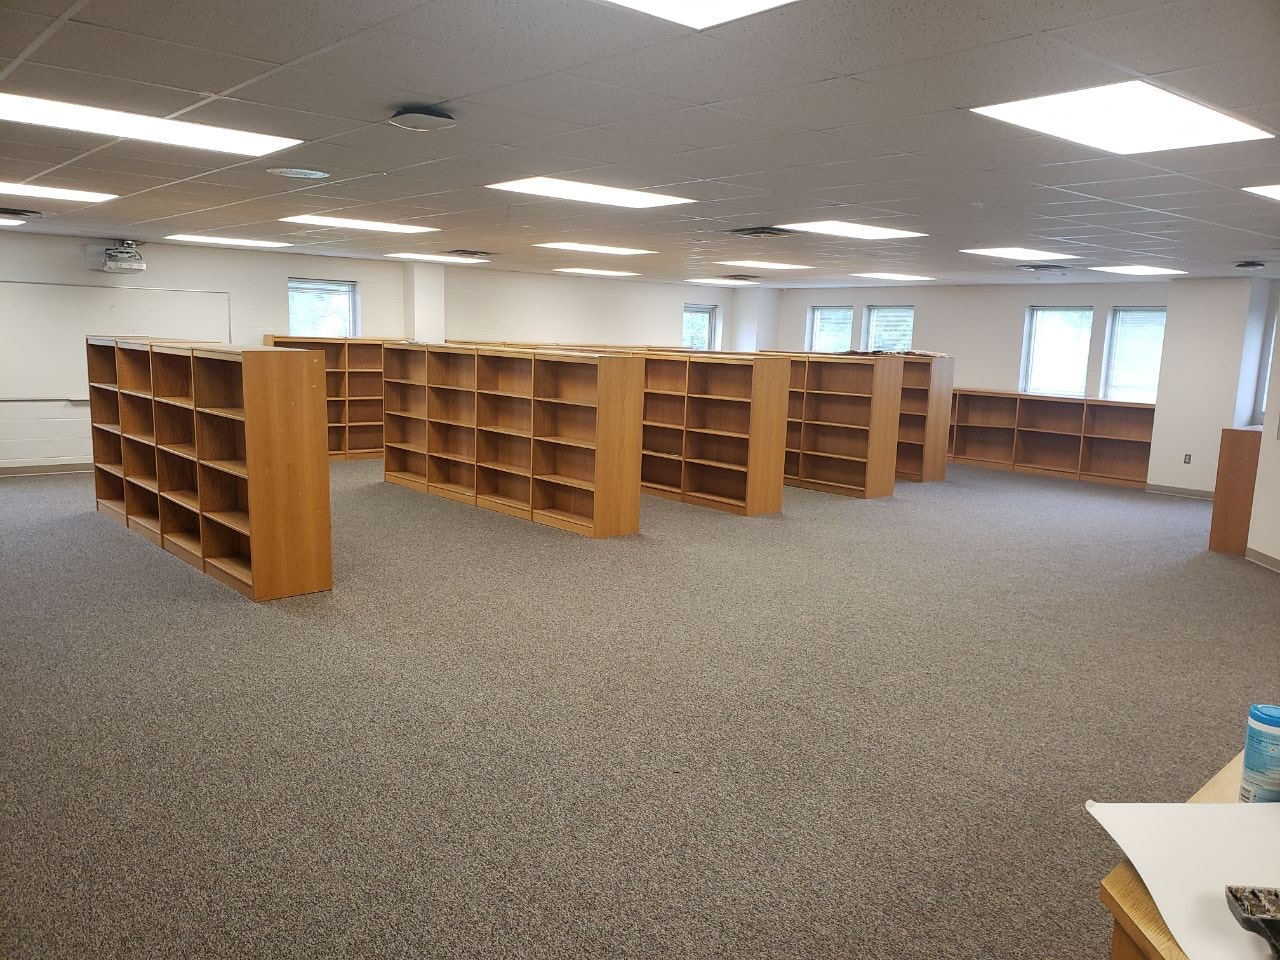 Library carpet installation in Mt. Juliet, TN from Absolute Flooring Inc